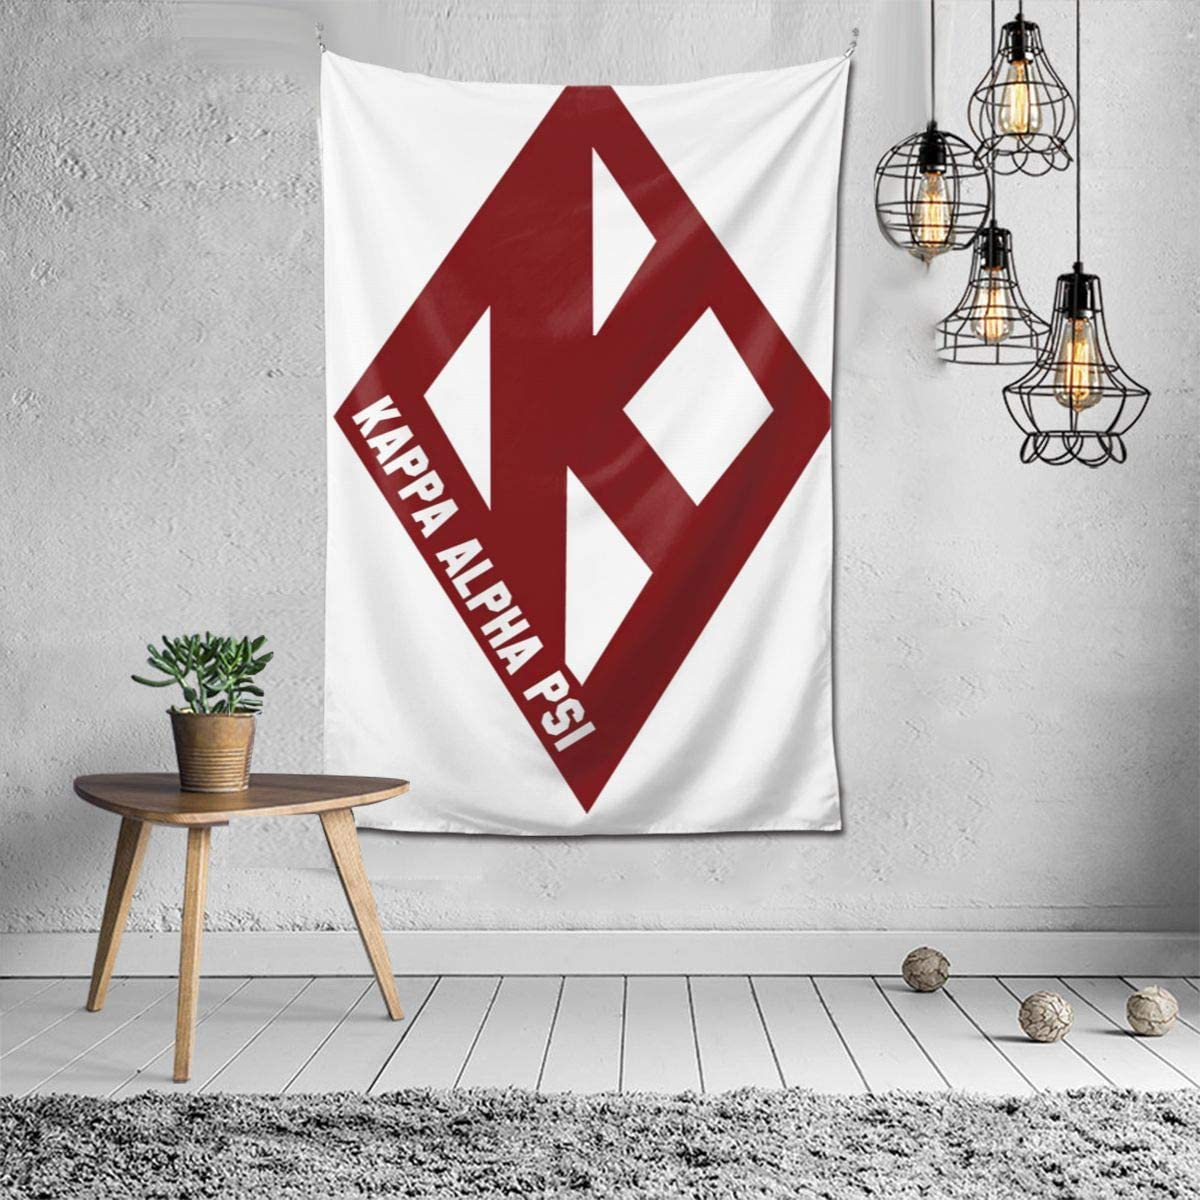 N/C Kappa Alpha Psi Tapestry Living Room Bedroom Decoration College Dorm Curtain Tv Backdrop Table Cloth 40 X 60inch.